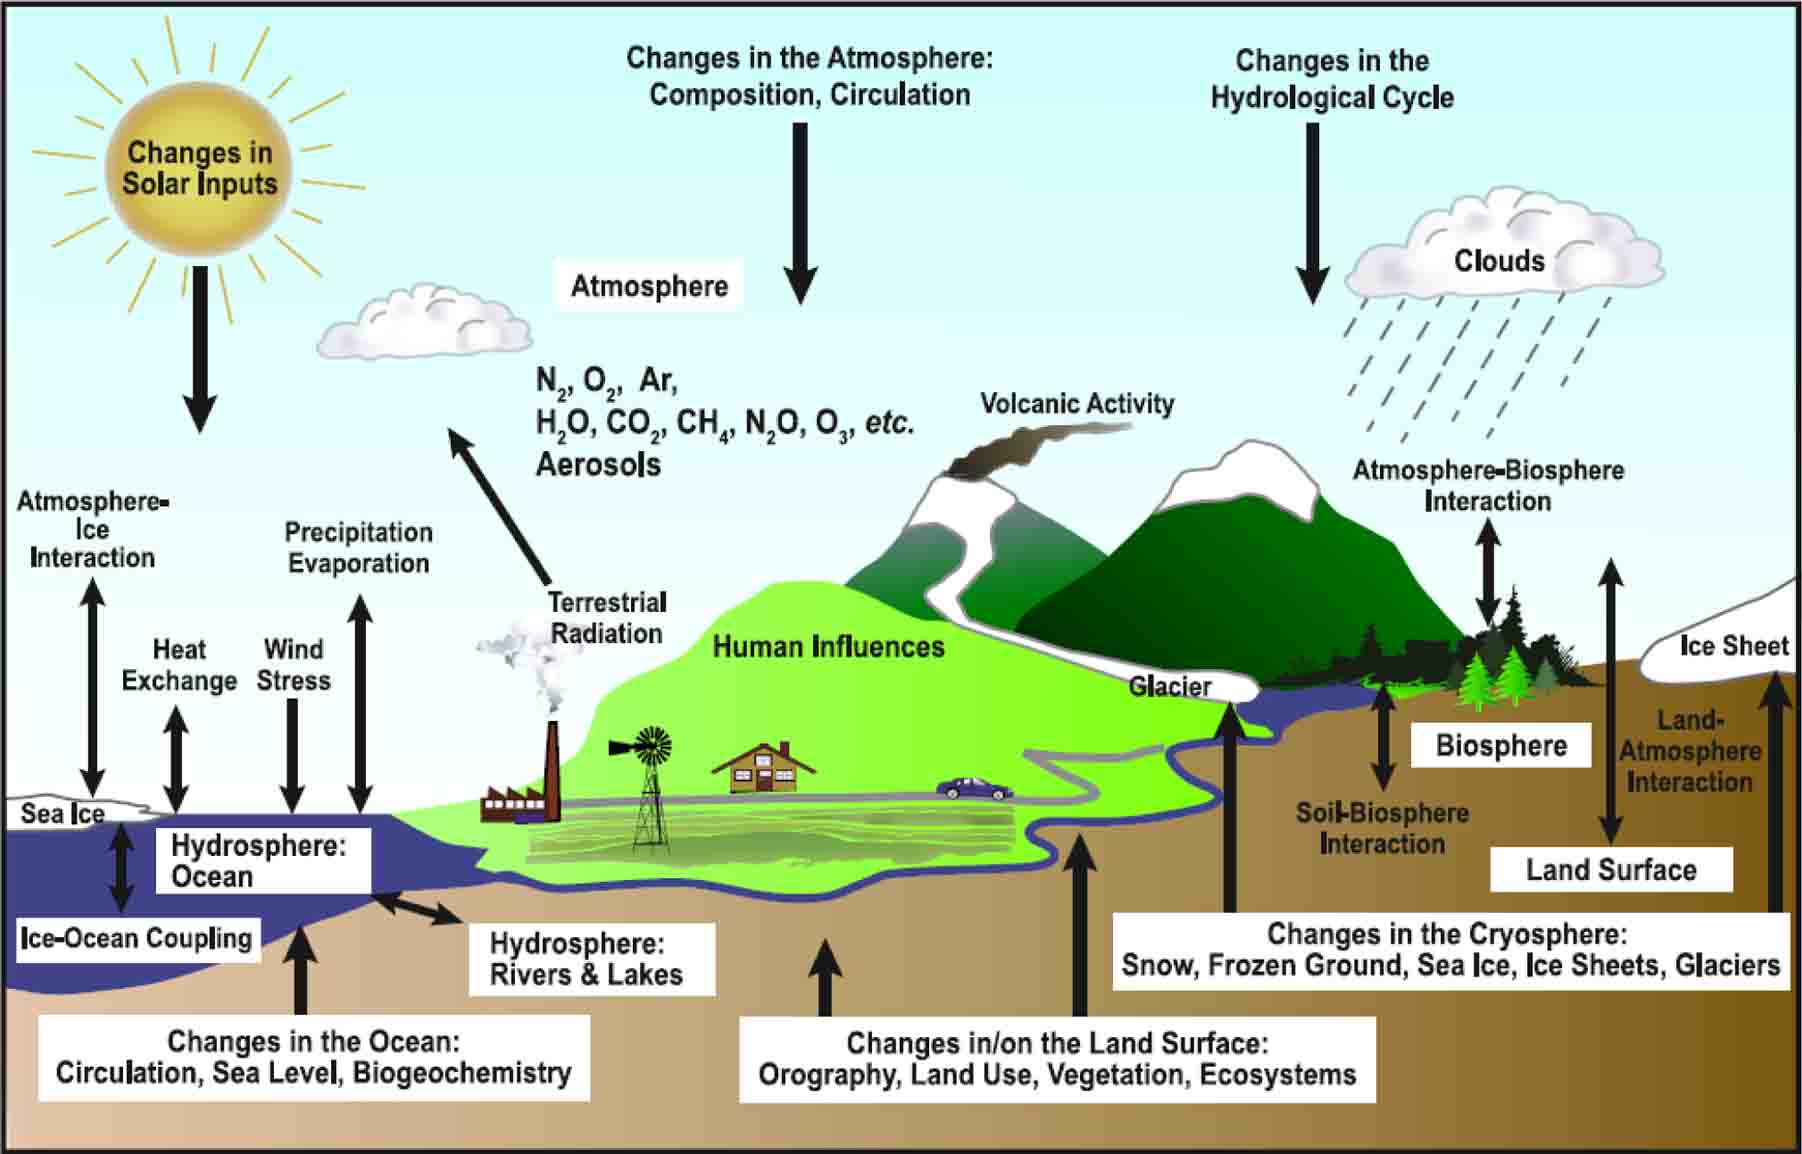 Schematic view of components of the climate system and processes involved in their interactions